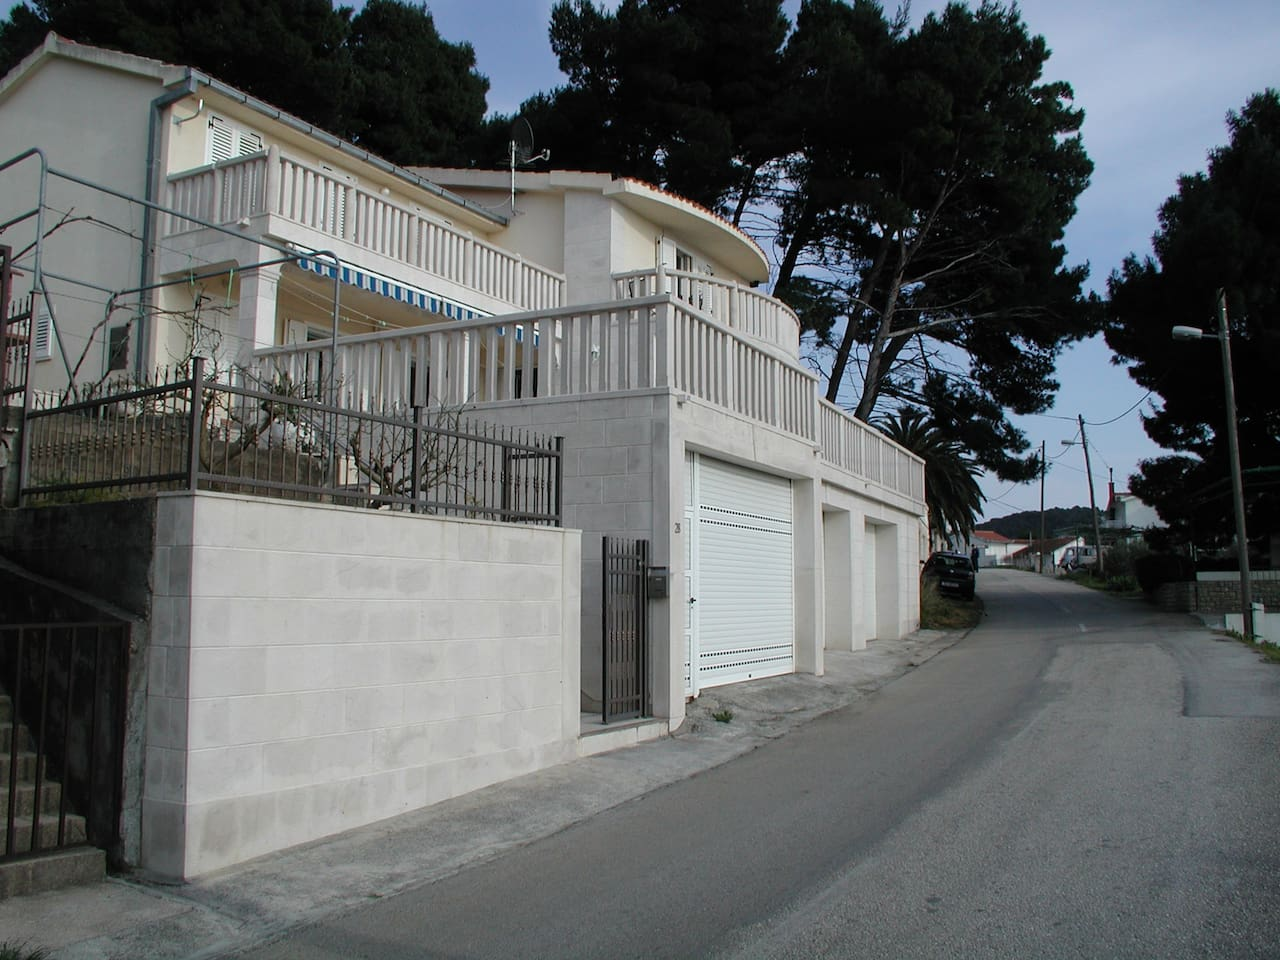 Villas view from the street